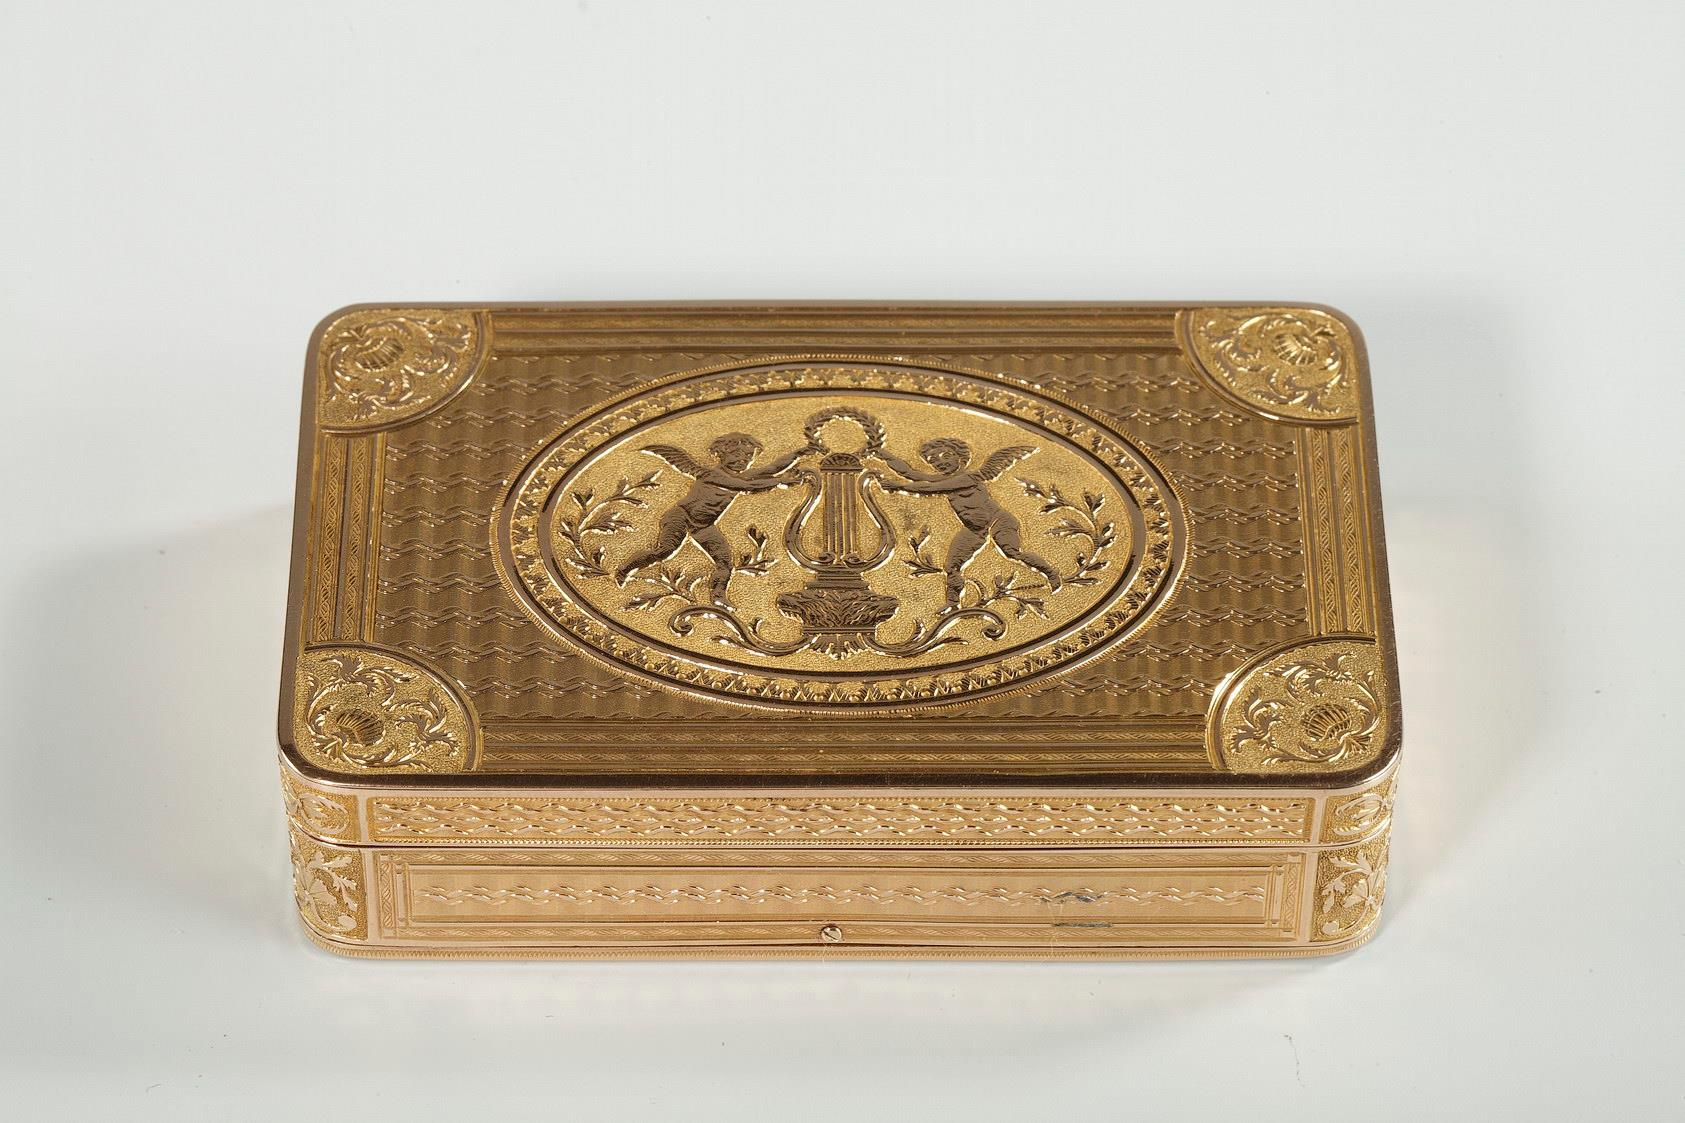 An Early 19th Century GOLD MUSICAL SNUFF BOX.